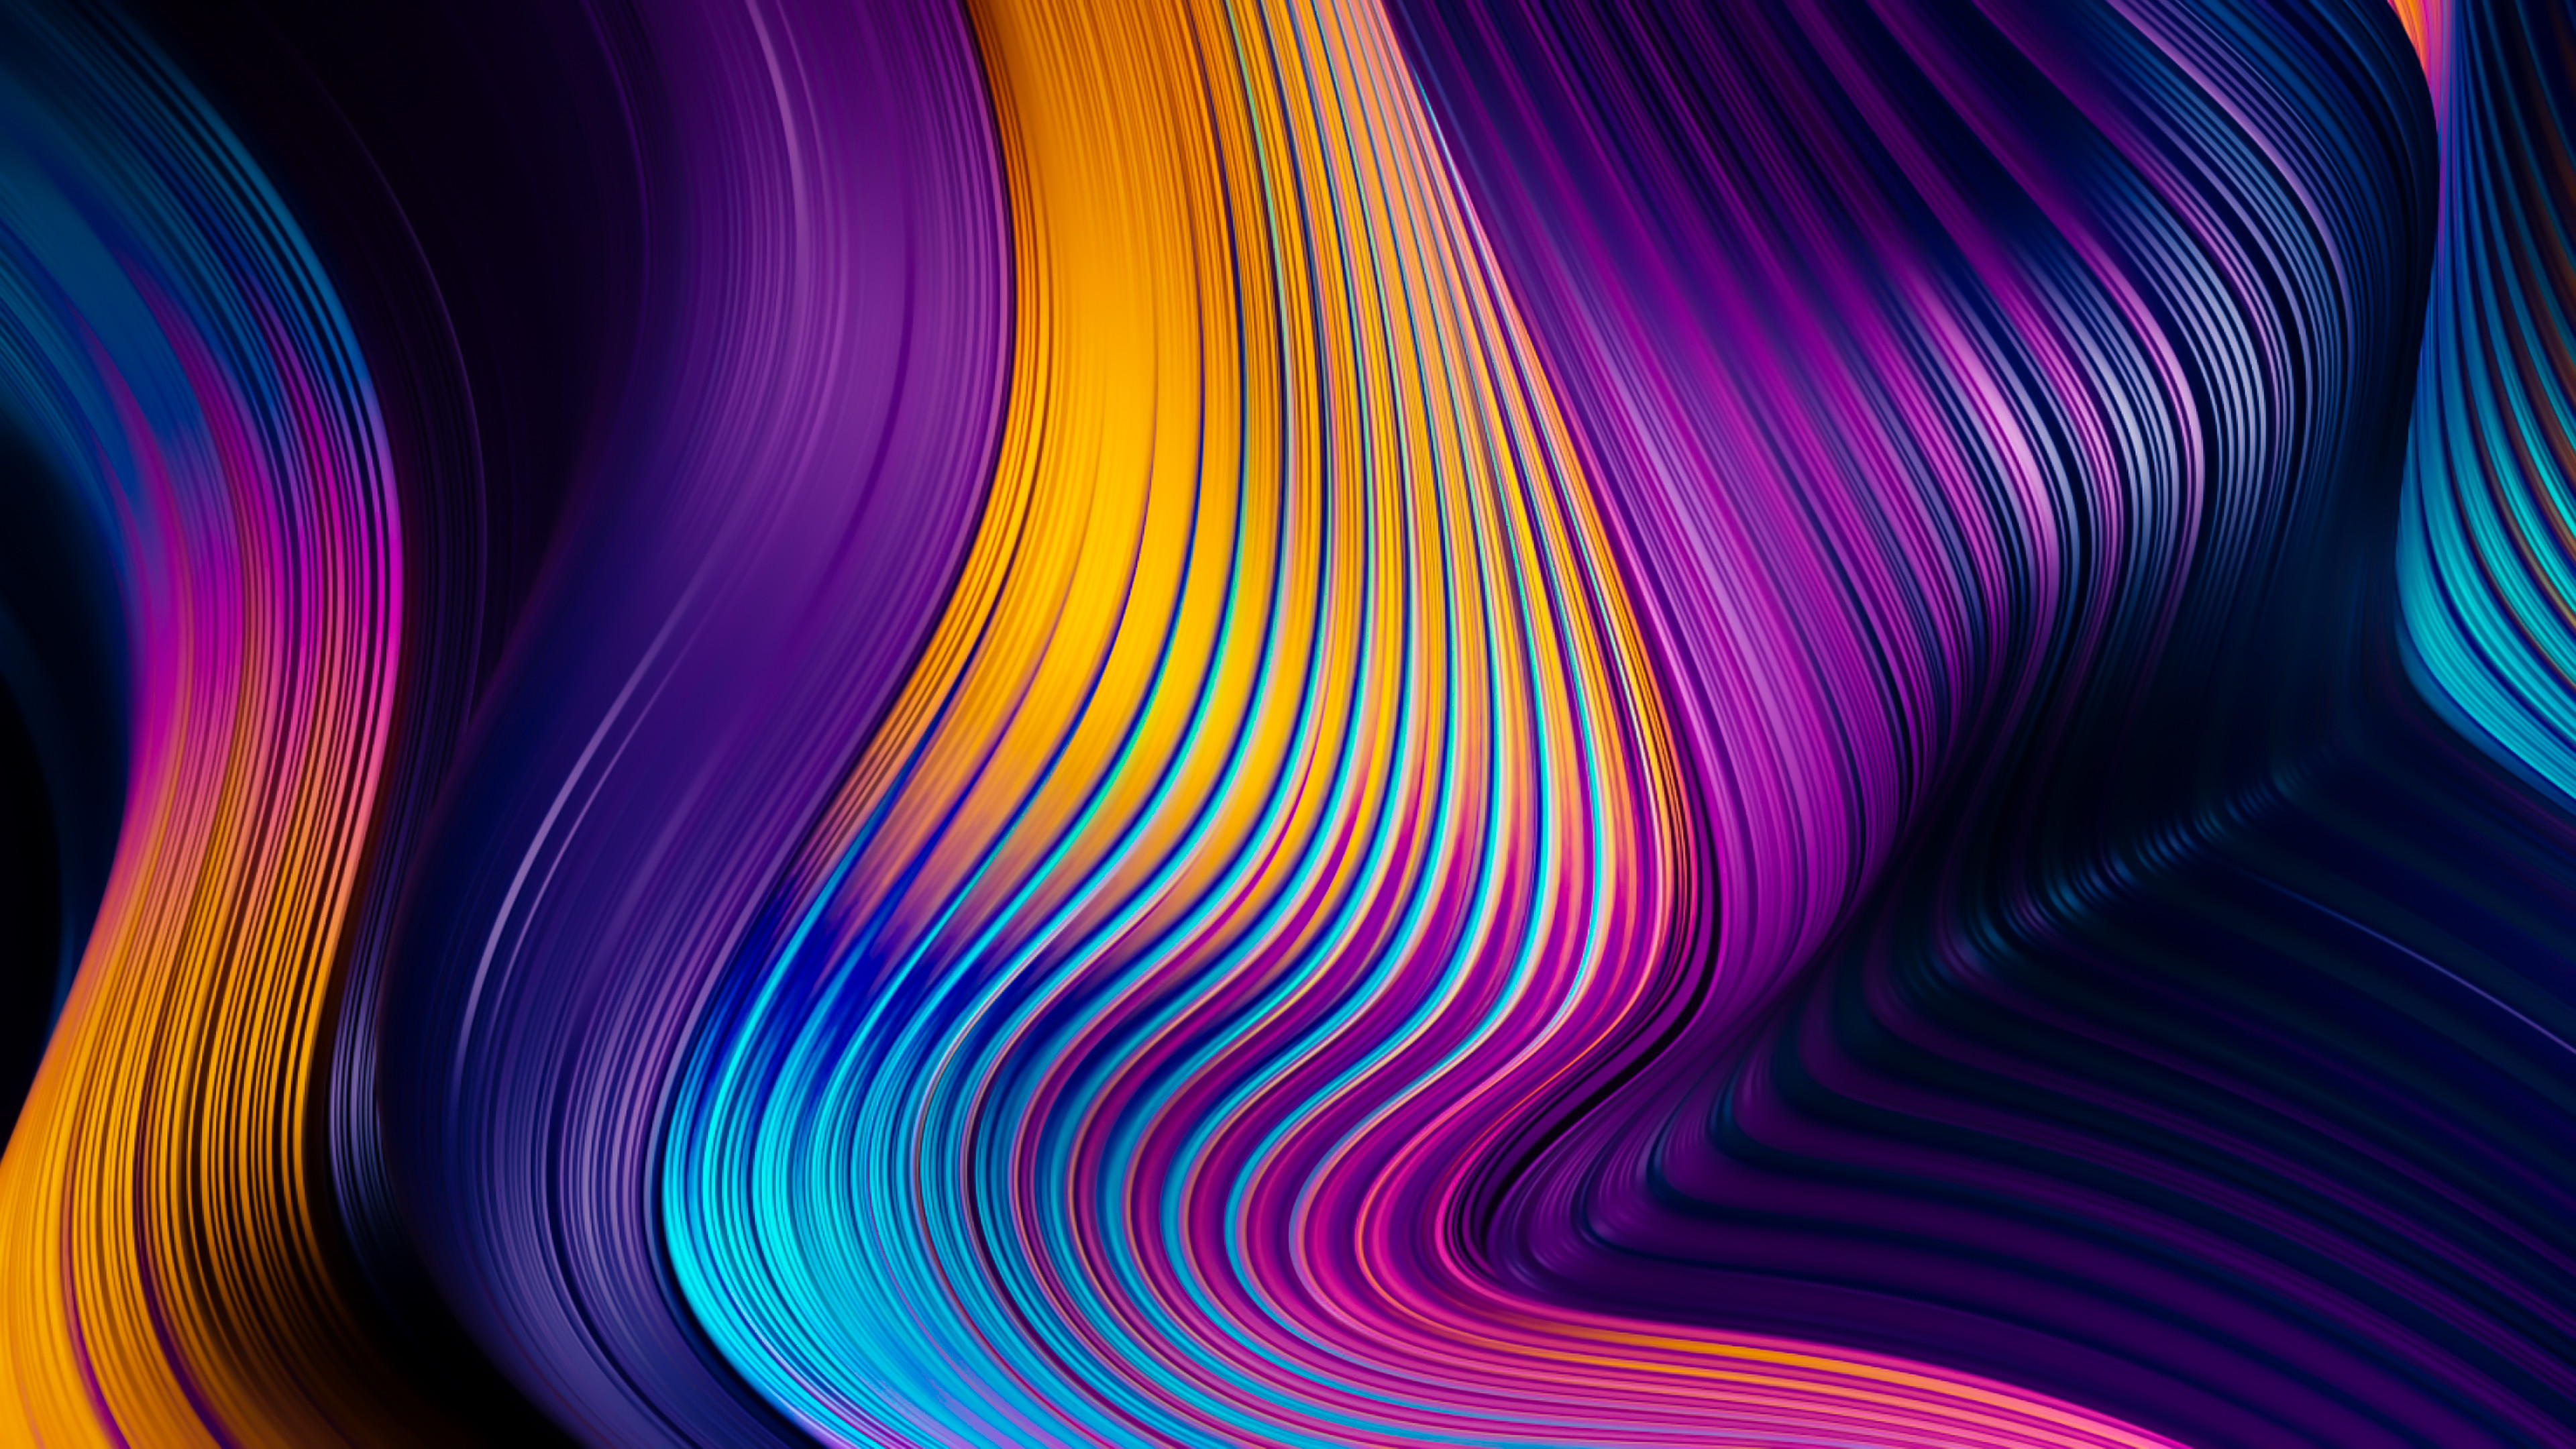 colors falling from top abstract 4k fq 3840x2160 1 - Colors Falling From Top Abstract -